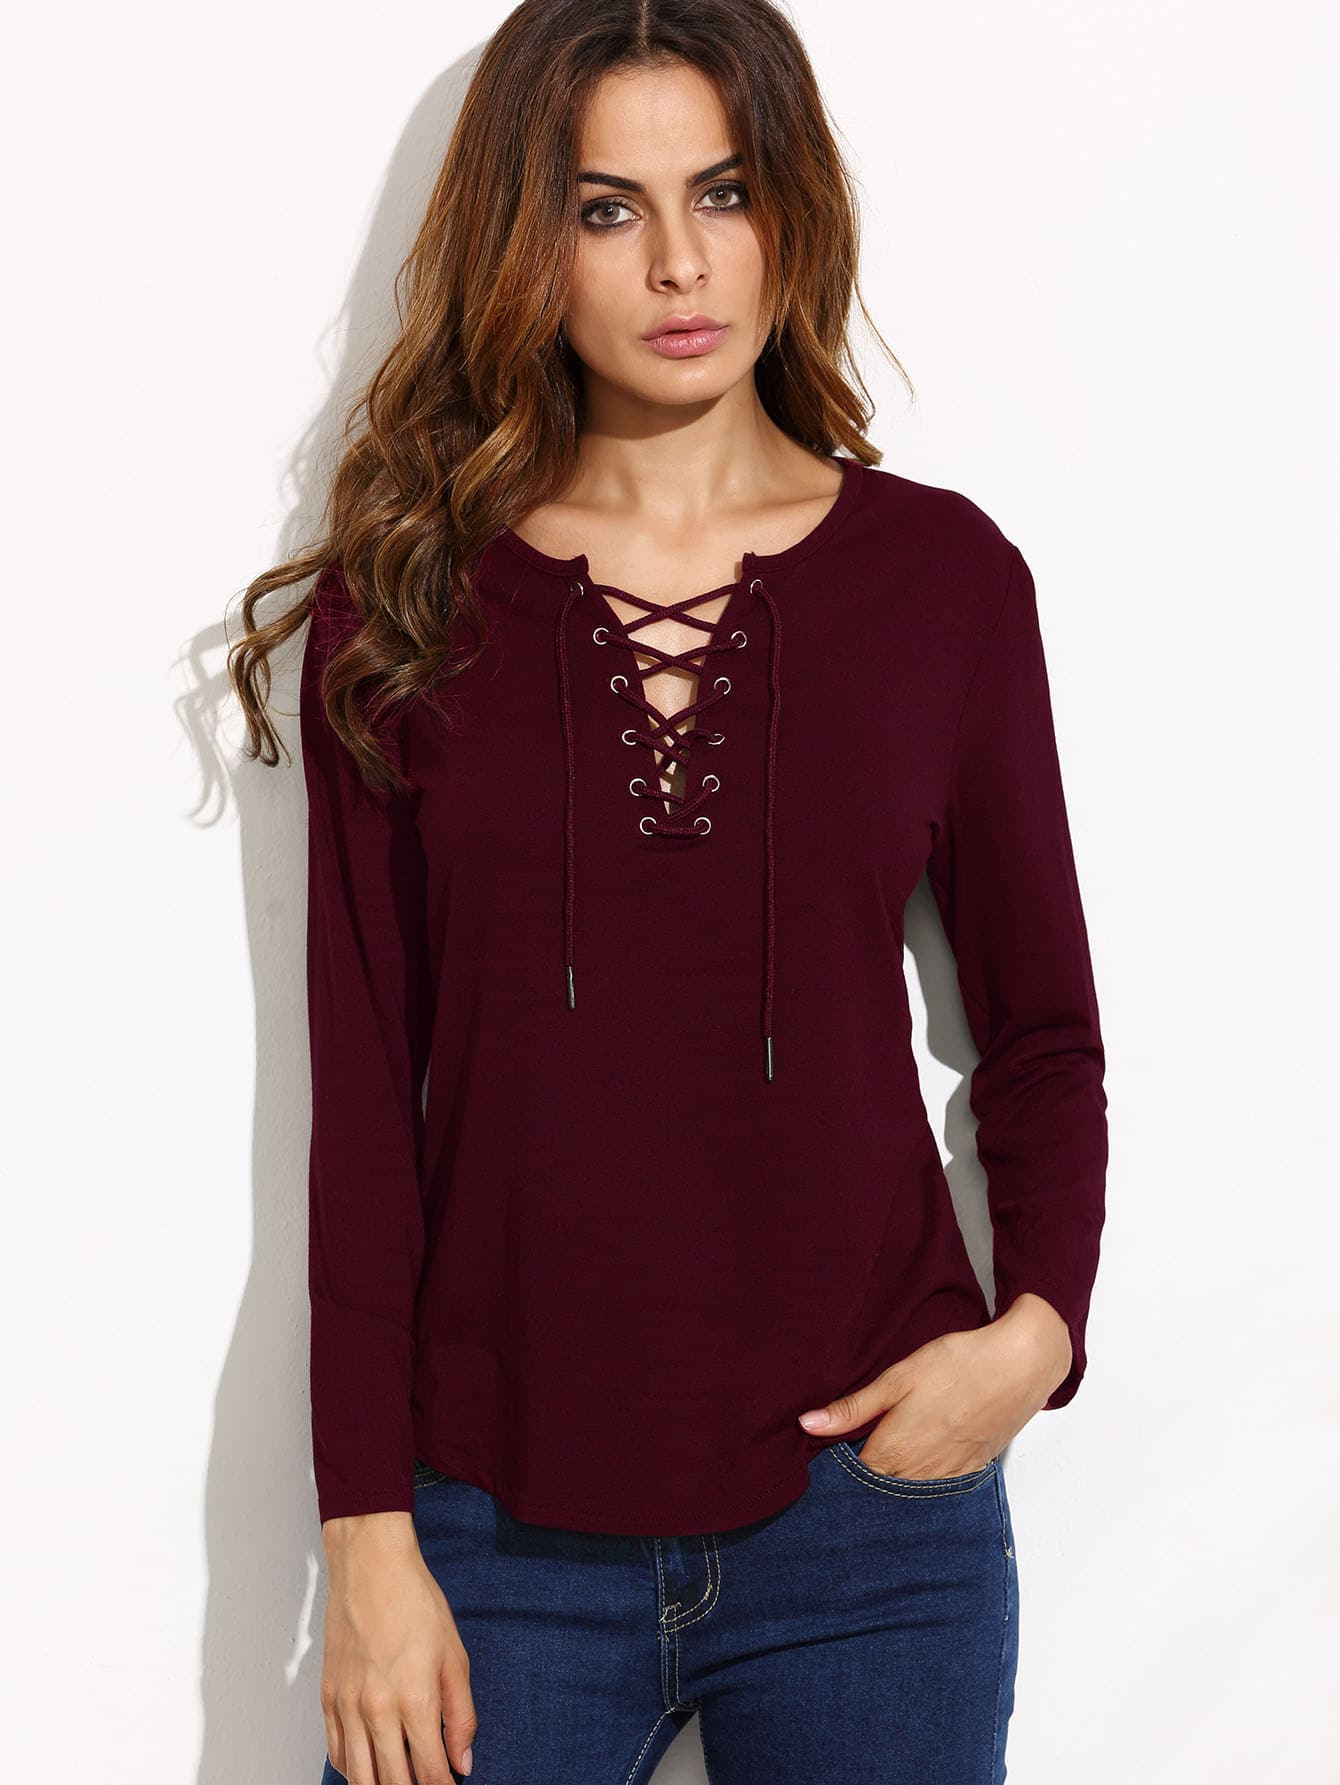 Burgundy Lace Up Long Sleeve T Shirt Emmacloth Women Fast